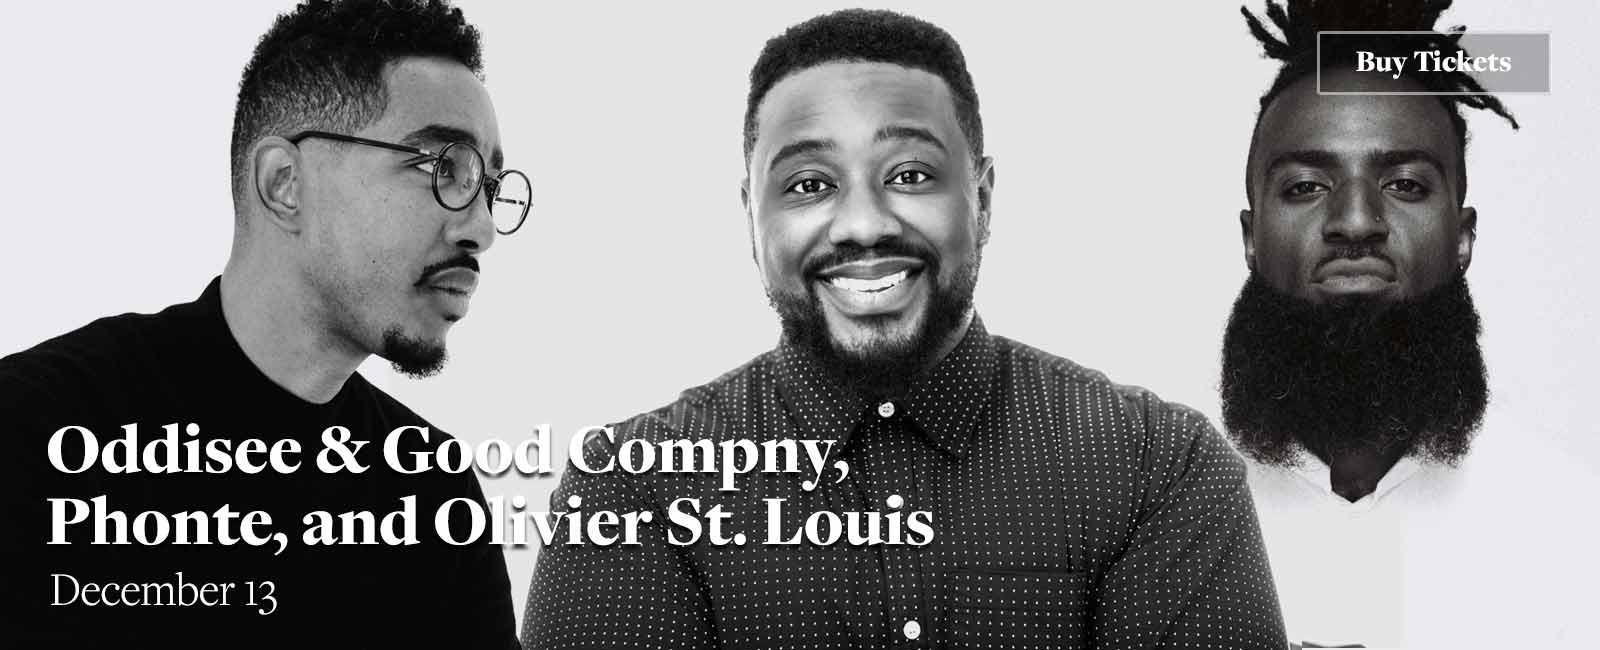 Oddisee & Good Compny, Phonte, and Olivier St. Louis